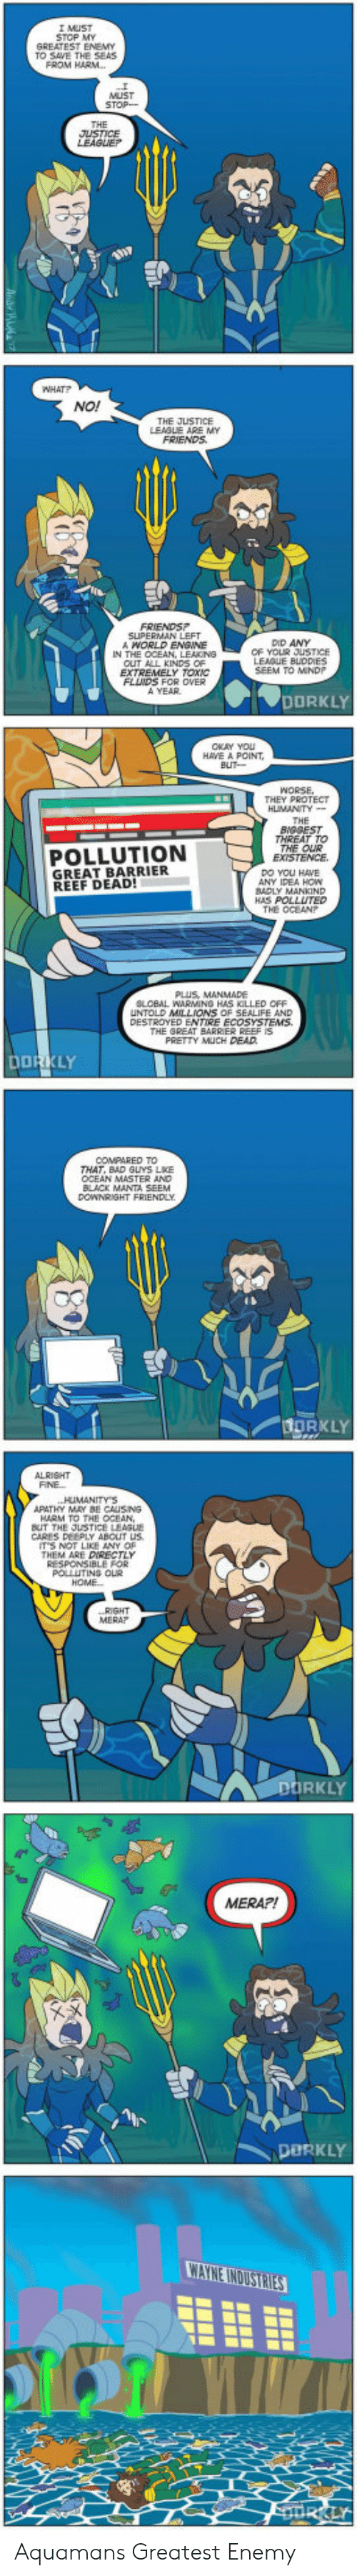 Mera: MUST  STOP MY  GREATEST ENEMY  TO SAVE THE SEAS  THE JUSTICE  SUPERMAN LEFT  DID ANY  OF YOUR JUSTICE  IN THE OCEAN  FLINDS FOR OVER  A YEAR  DORKLY  OKAY YOU  HAVE A POINT,  HLMANTY  POLLUTION  GREAT BARRIER  REEF DEAD!  YMANKIND  HAS POLLUTED  THE OCEAN?  HAS KILLED OFF  ECOSYSTEMS.  THE GREAT BARRIER REEF IS  PRETTY MUCH DEAD  COMPARED TO  THAT, BAD GUYS LKE  OCEAN MASTER AND  HARM TO THE OCEAN  CARES DEEPLY ABcut us  IT'S NOT LICE ANY OP  THEM ARE DIRECTLY  RKLY  MERA?!  PORKLY Aquamans Greatest Enemy